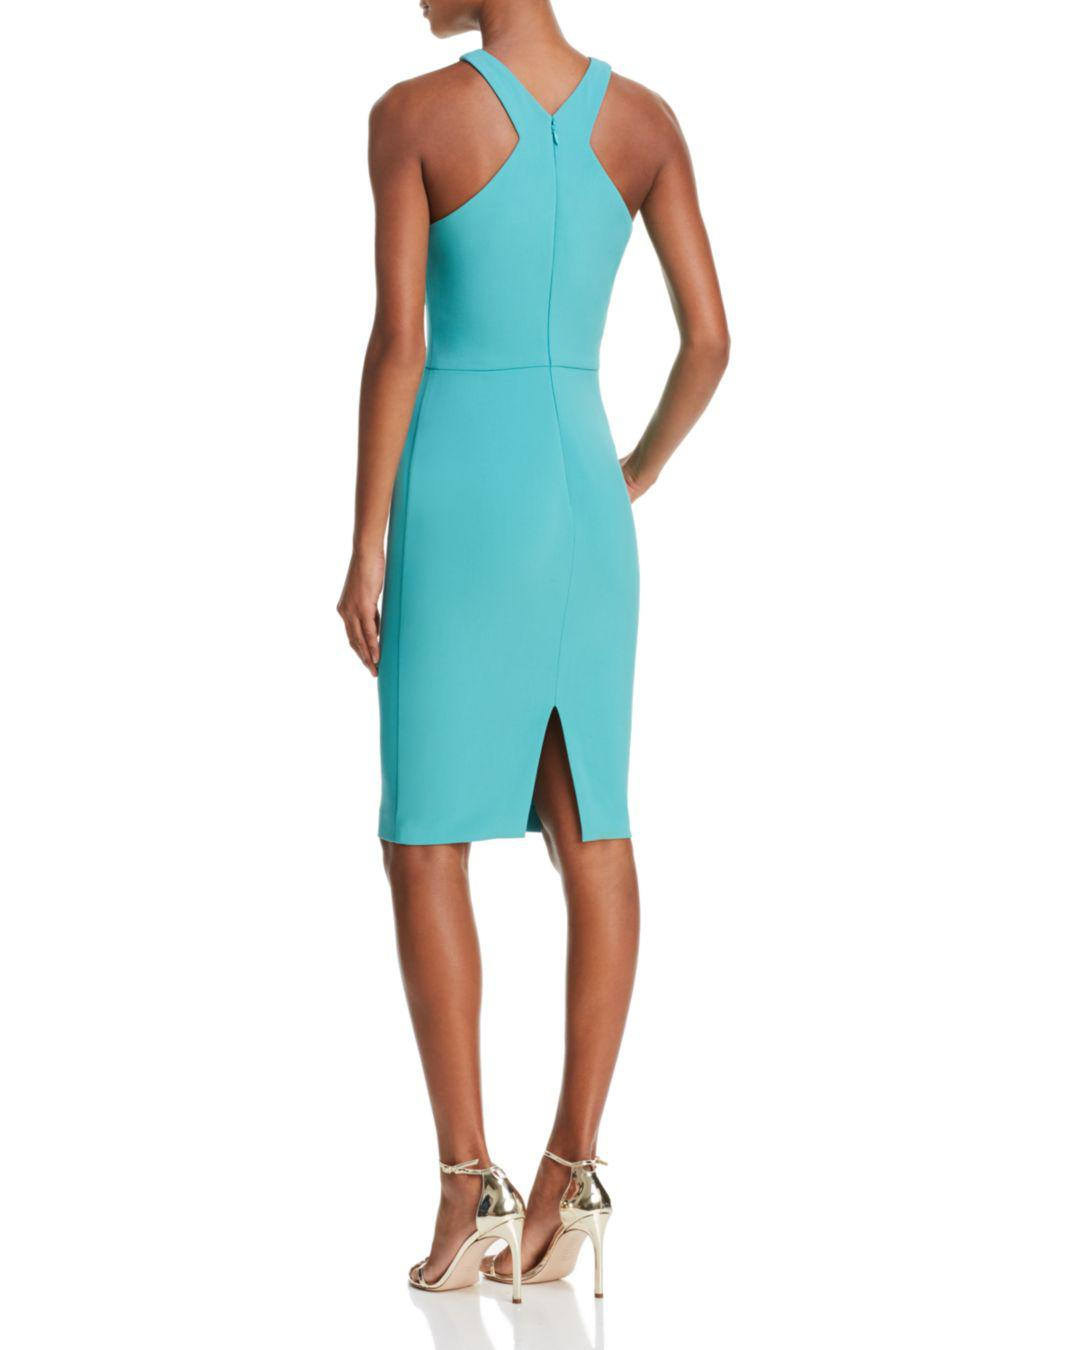 c68438b5 Lyst - Likely Carolyn Cross-strap Dress in Blue